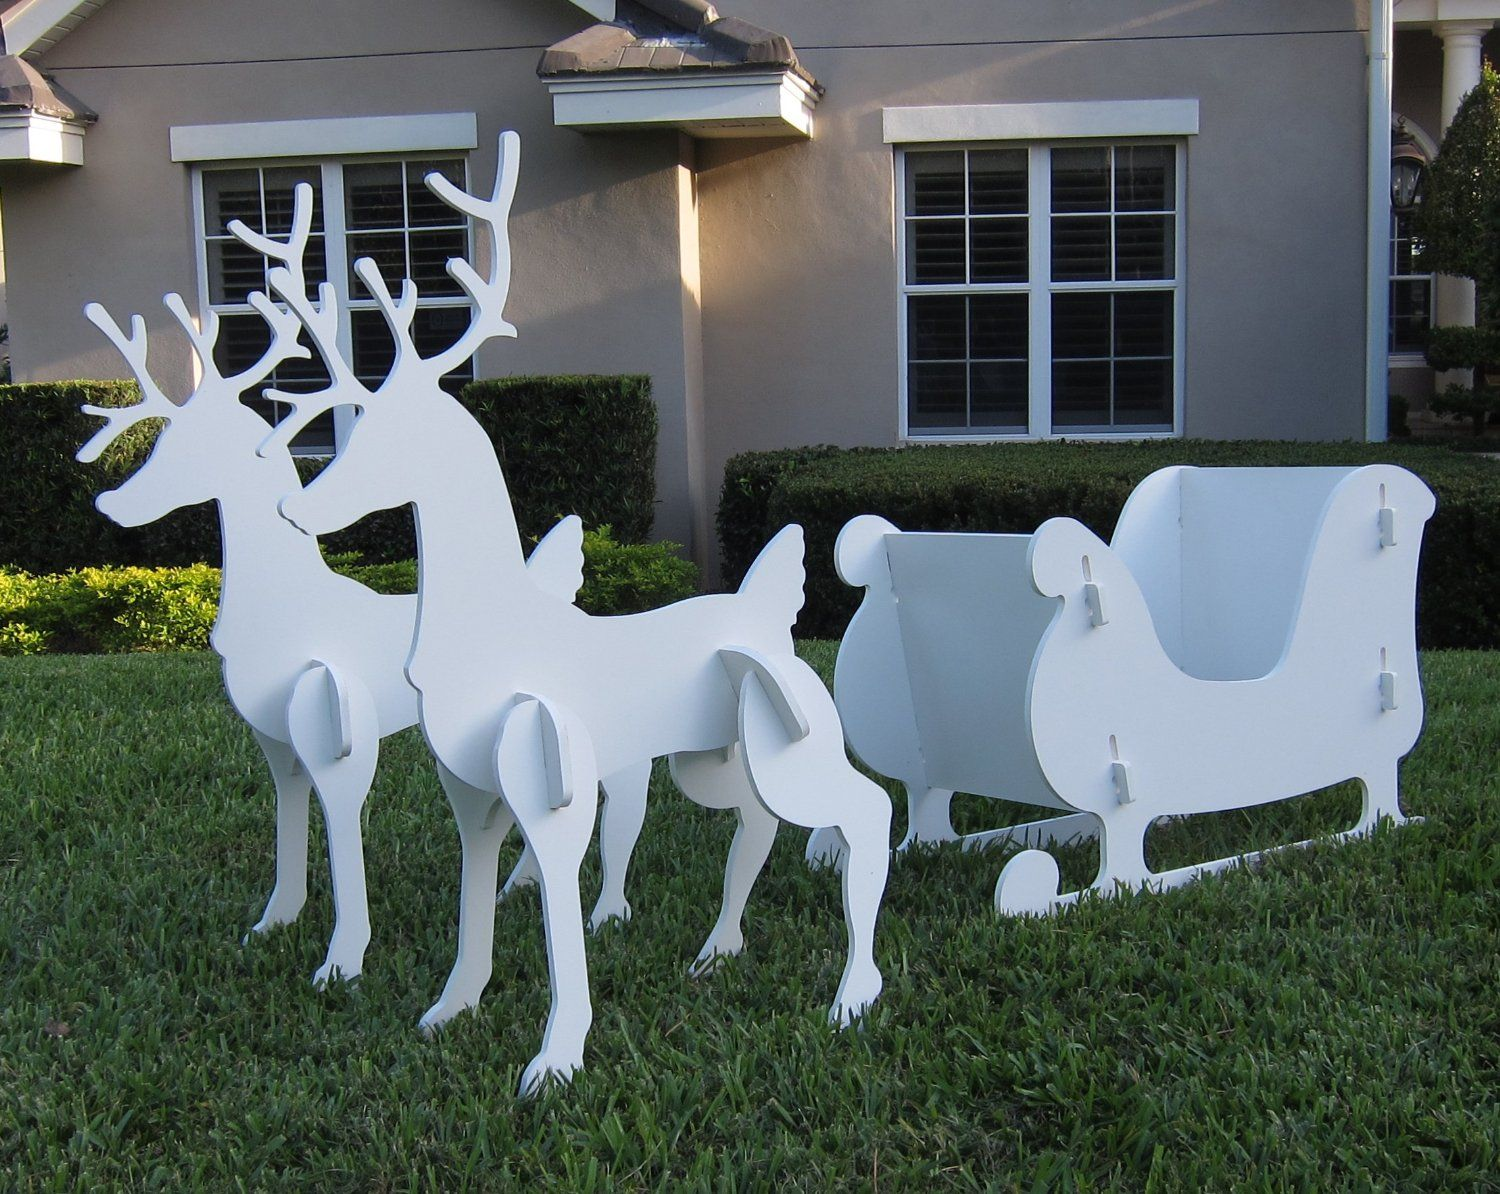 Large+Outdoor+Christmas+Decorations | Large Outdoor Christmas Decorations - Santa Sleigh Reindeer Outdoor Yard Decoration New Christmas Sale